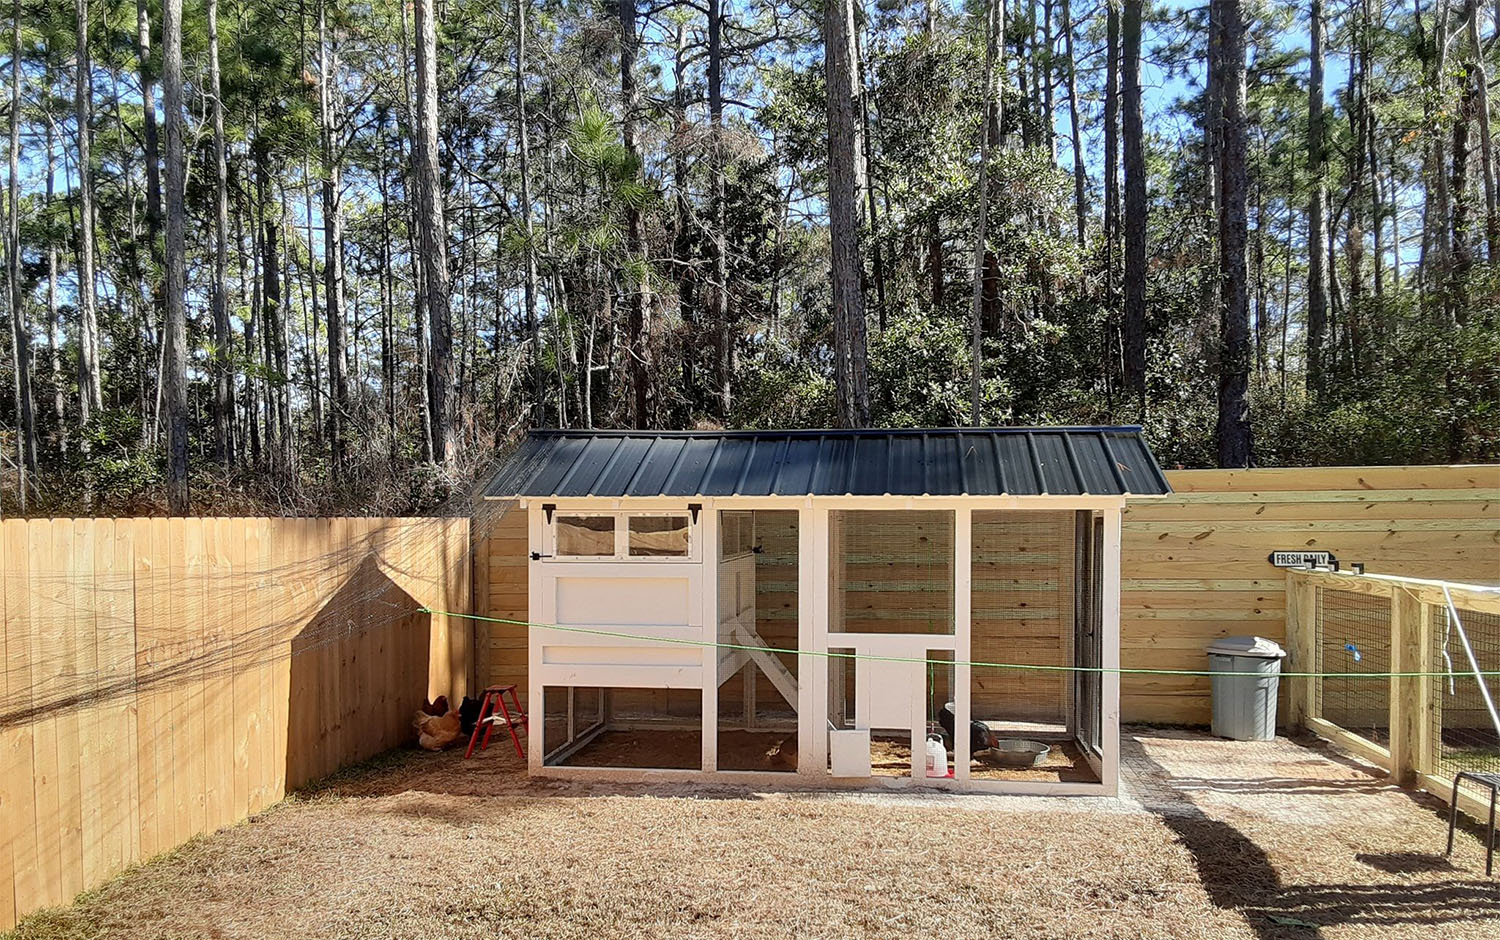 6×12 American Coop in Miami, Florida with fenced in area with netting